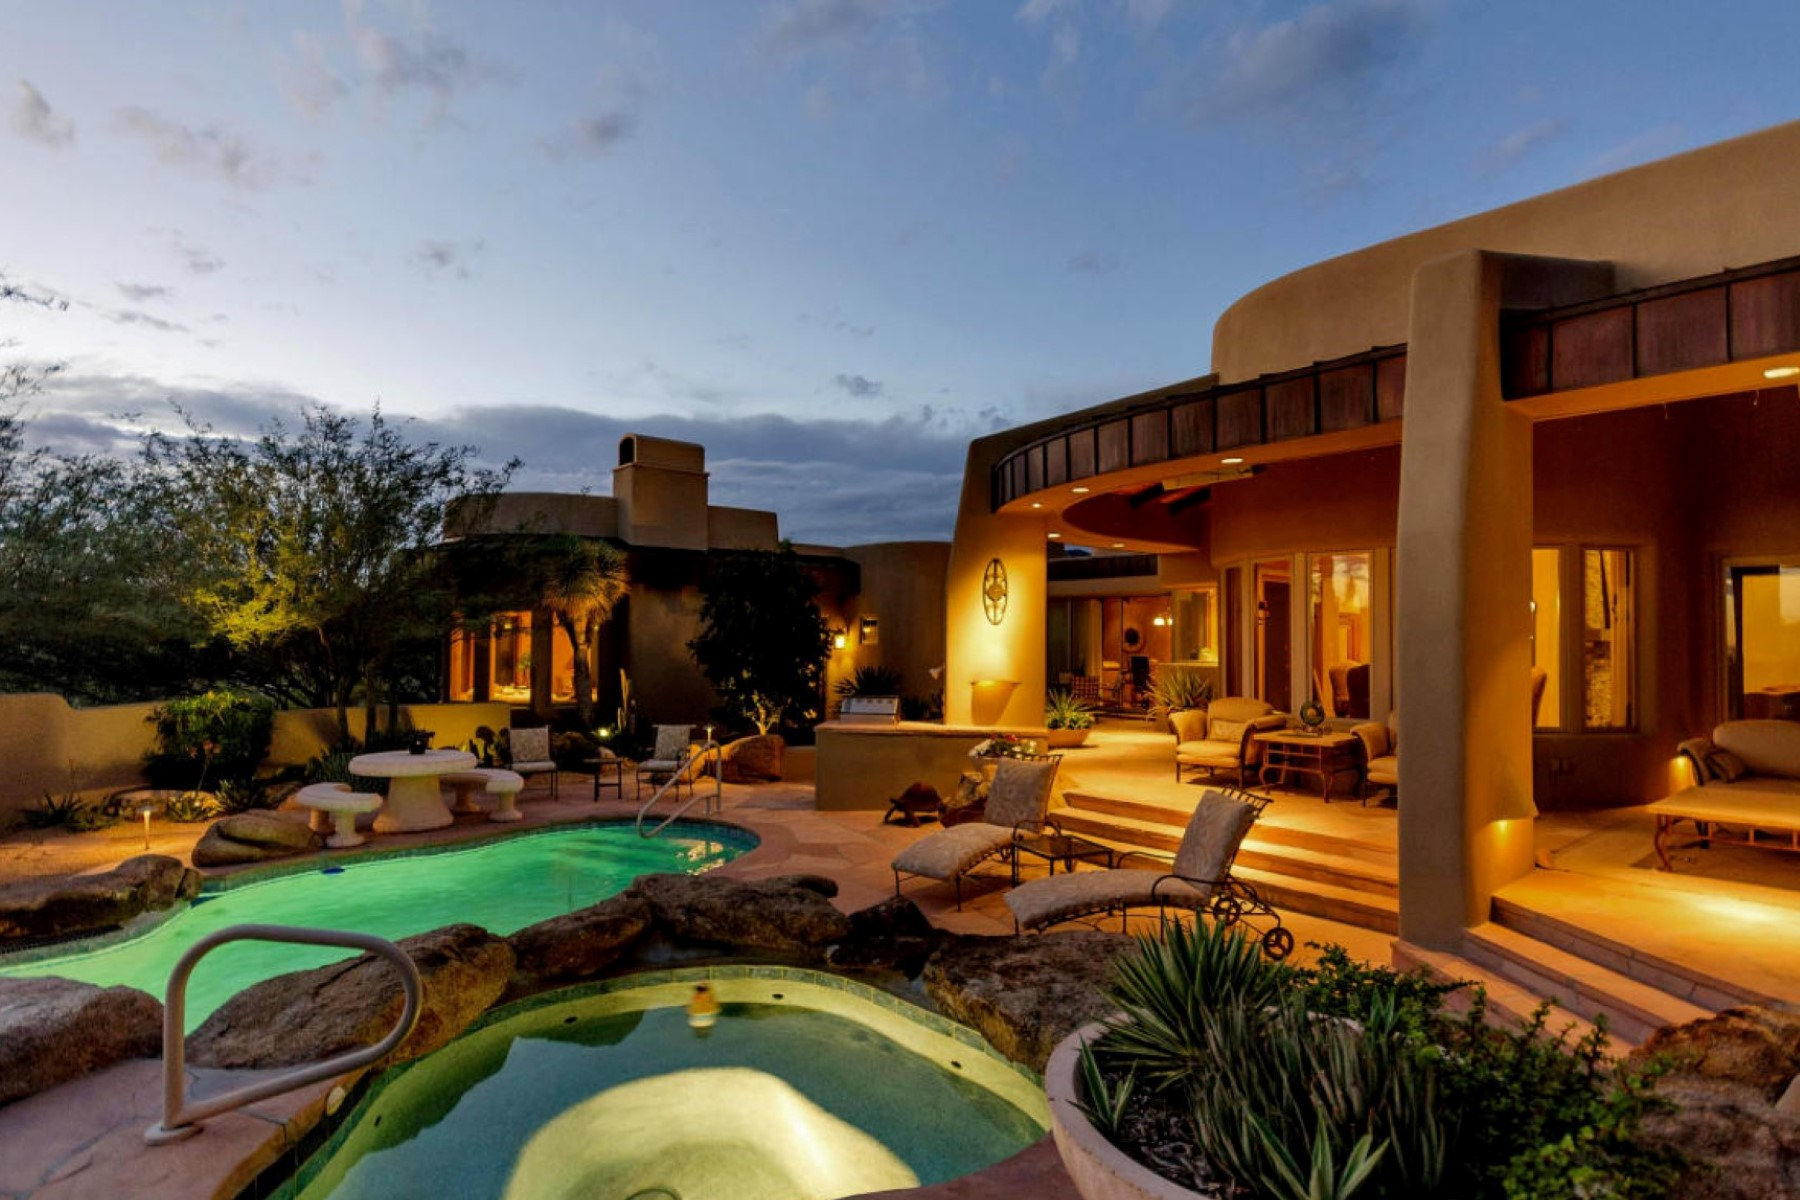 Single Family Home for Sale at Fabulous Desert Classic Style Home on Extremely Private Lot in Desert Mountain 10822 E Prospect Point Drive Scottsdale, Arizona 85262 United States